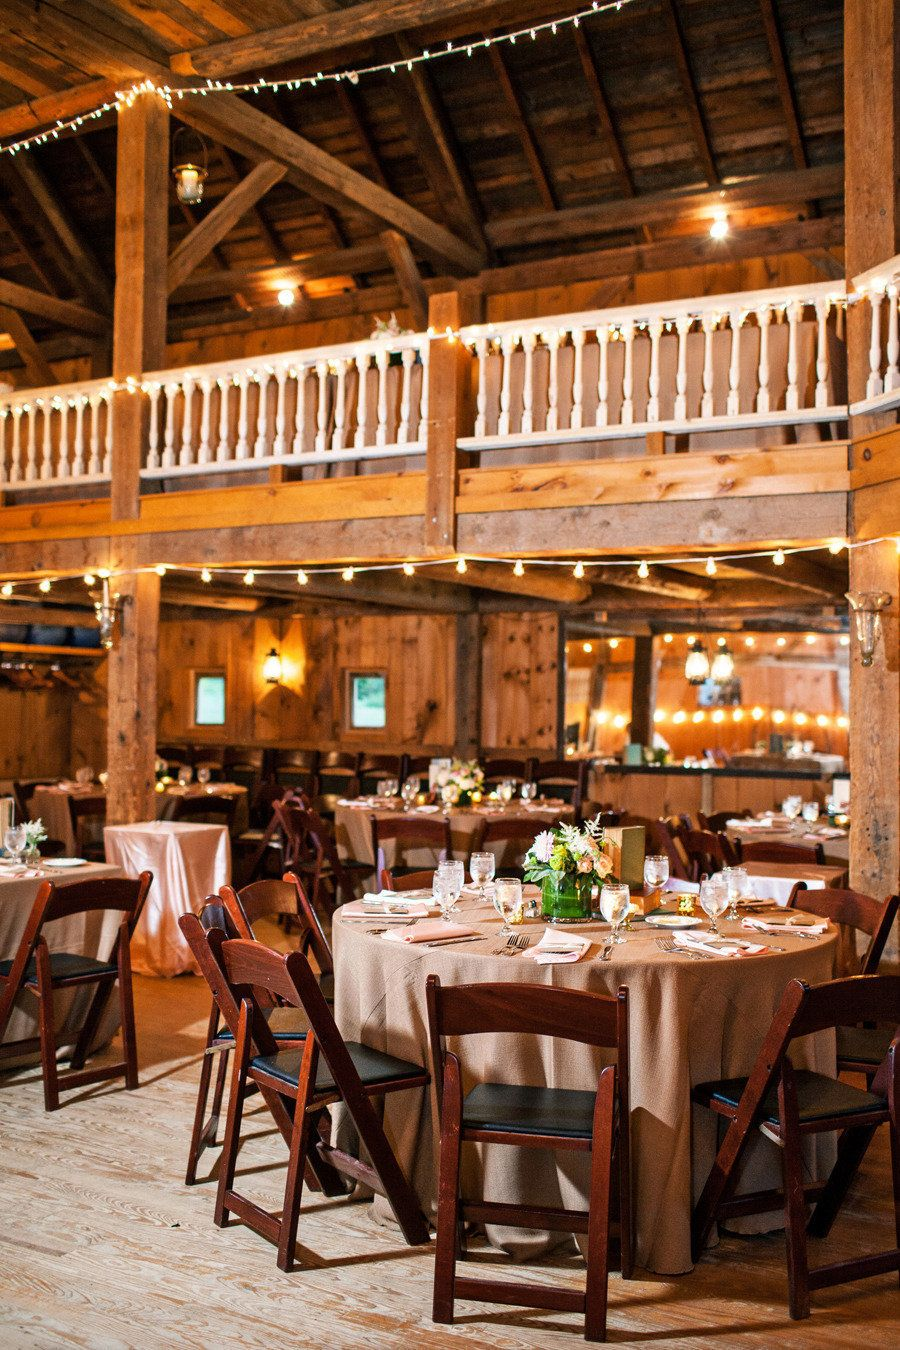 Rustic New Hampshire Wedding at Brass Heart Inn from Tyra